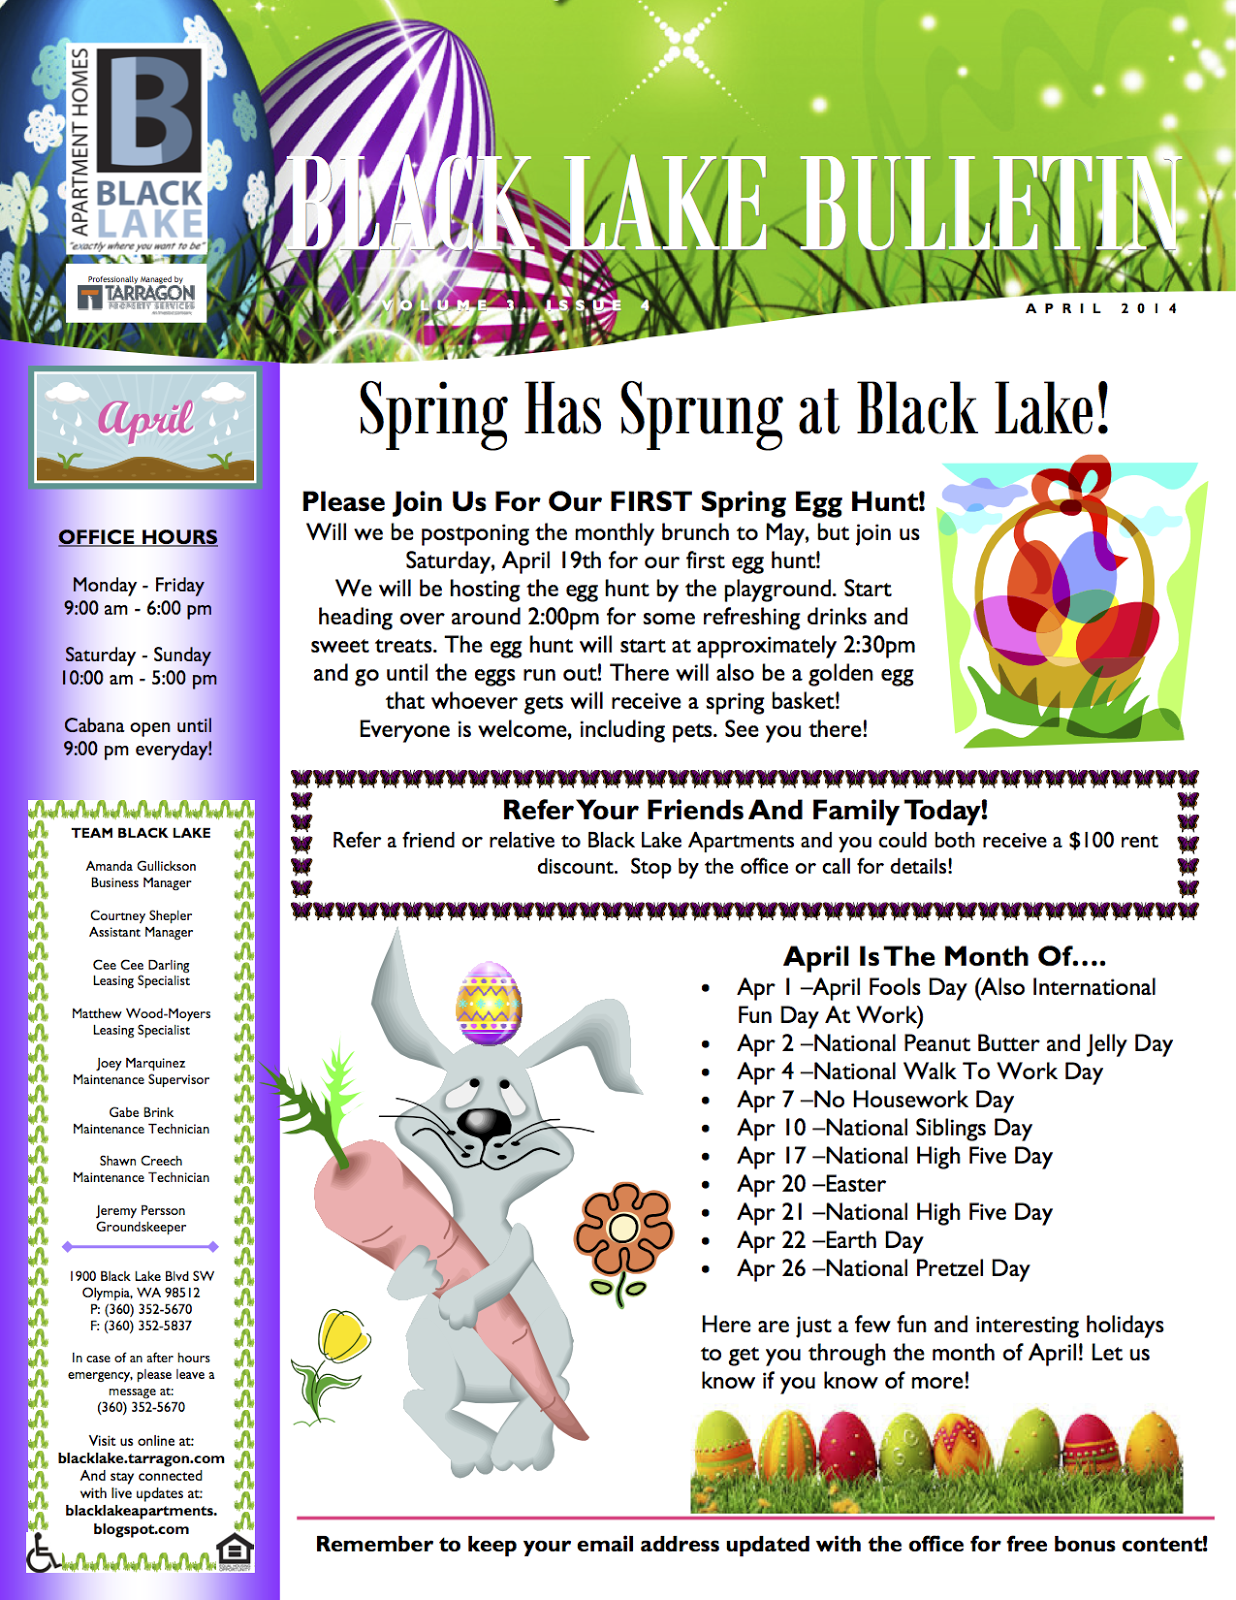 Newsletter ideas. April is the month of... | Property Management ...